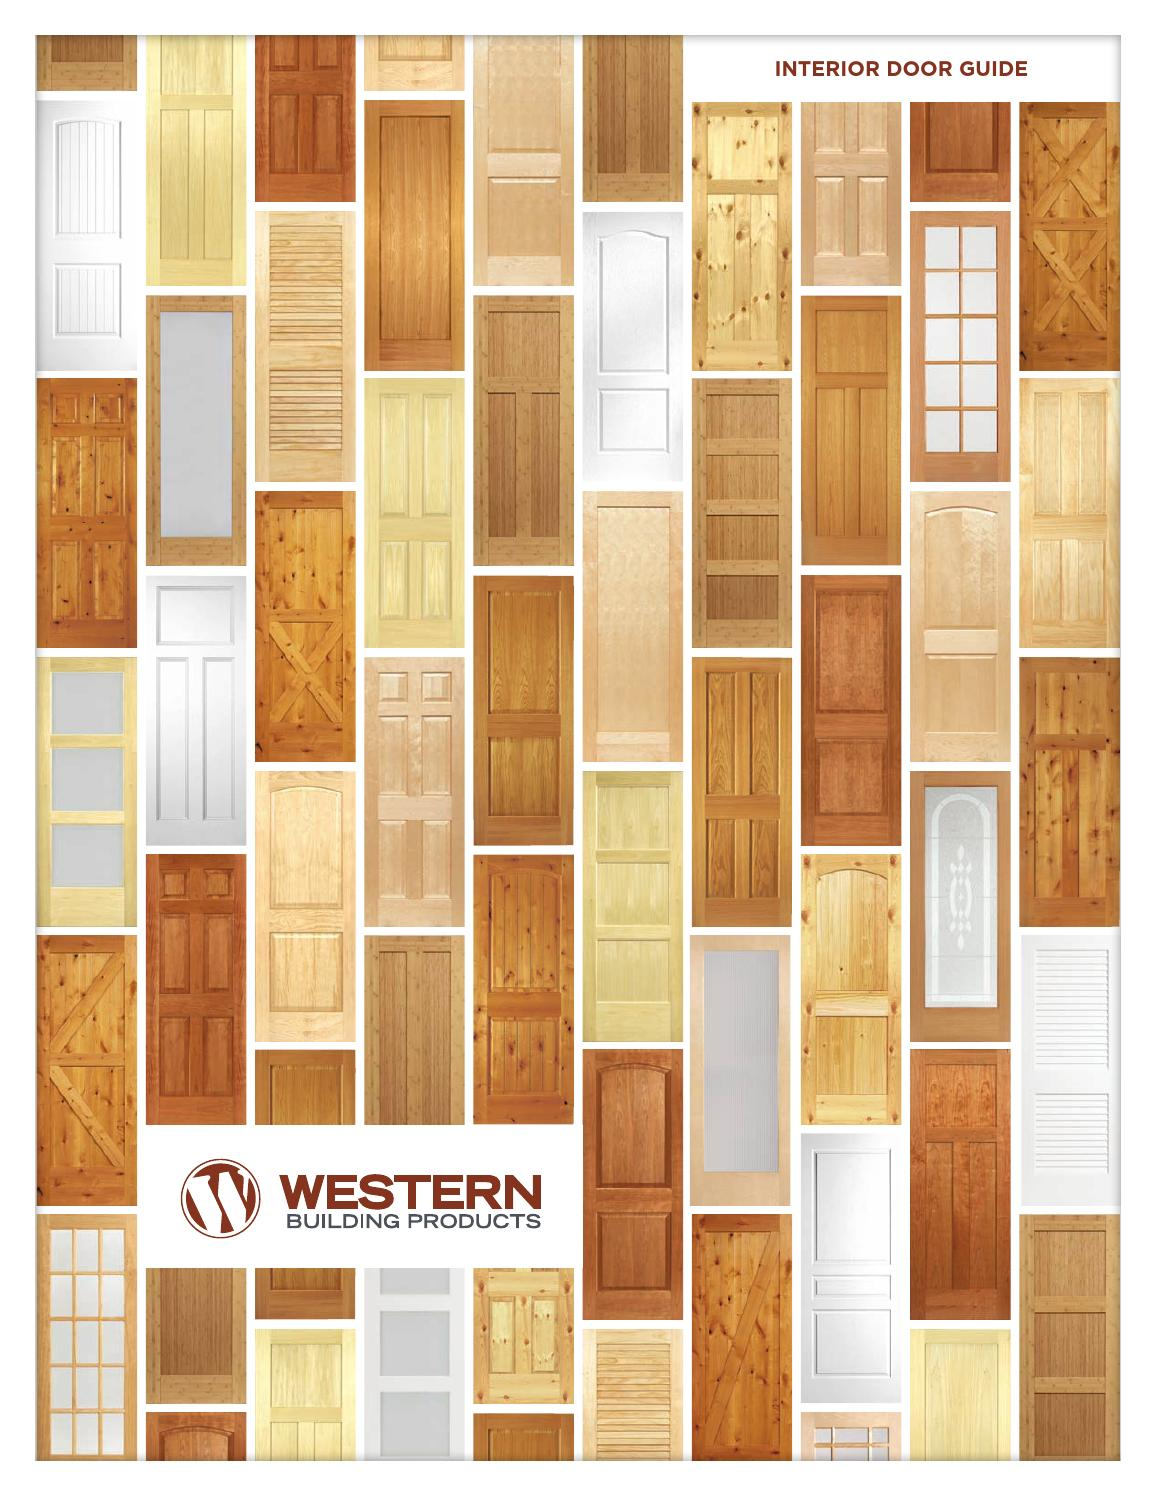 Western Interior Door Brochure By Western Building Products Issuu